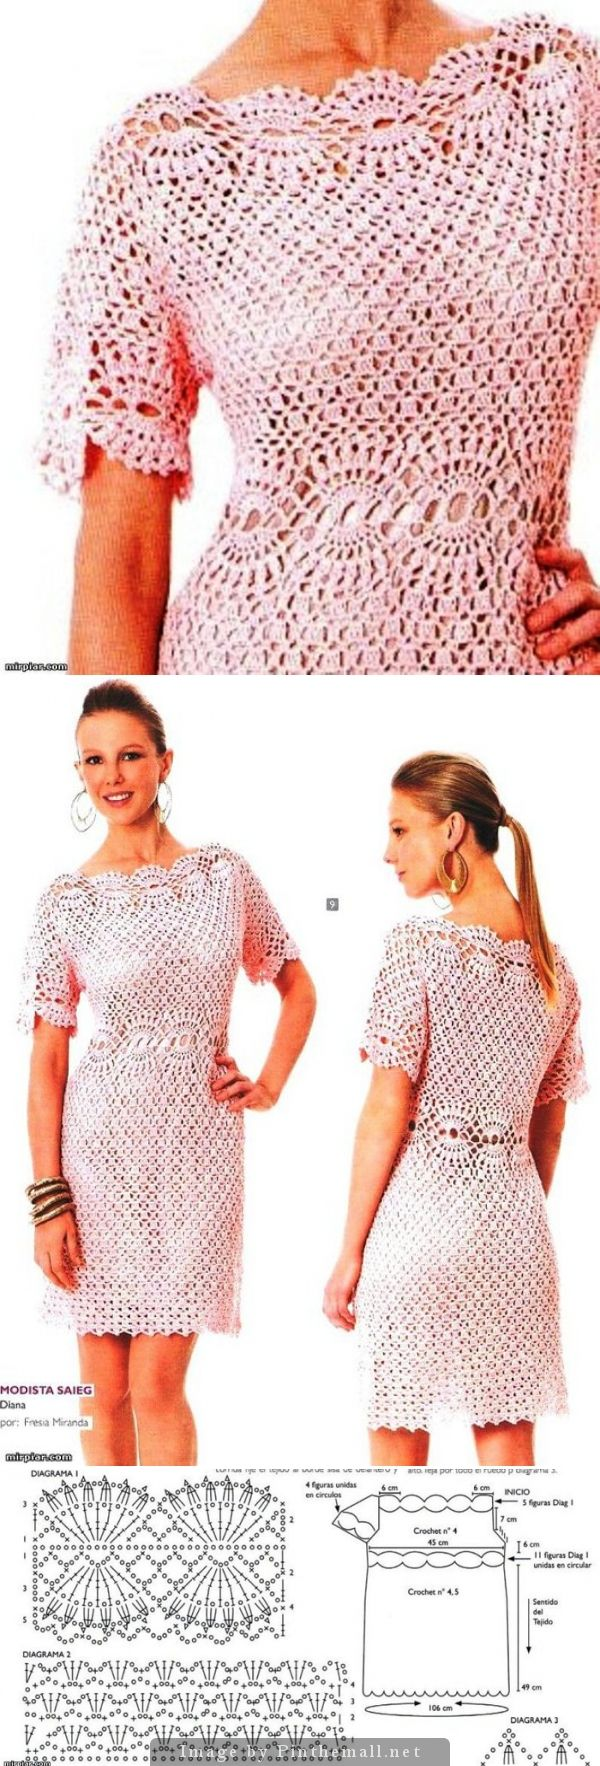 Crochet top/dress ~~ http://www.liveinternet.ru/users/frosinda/post150119004/